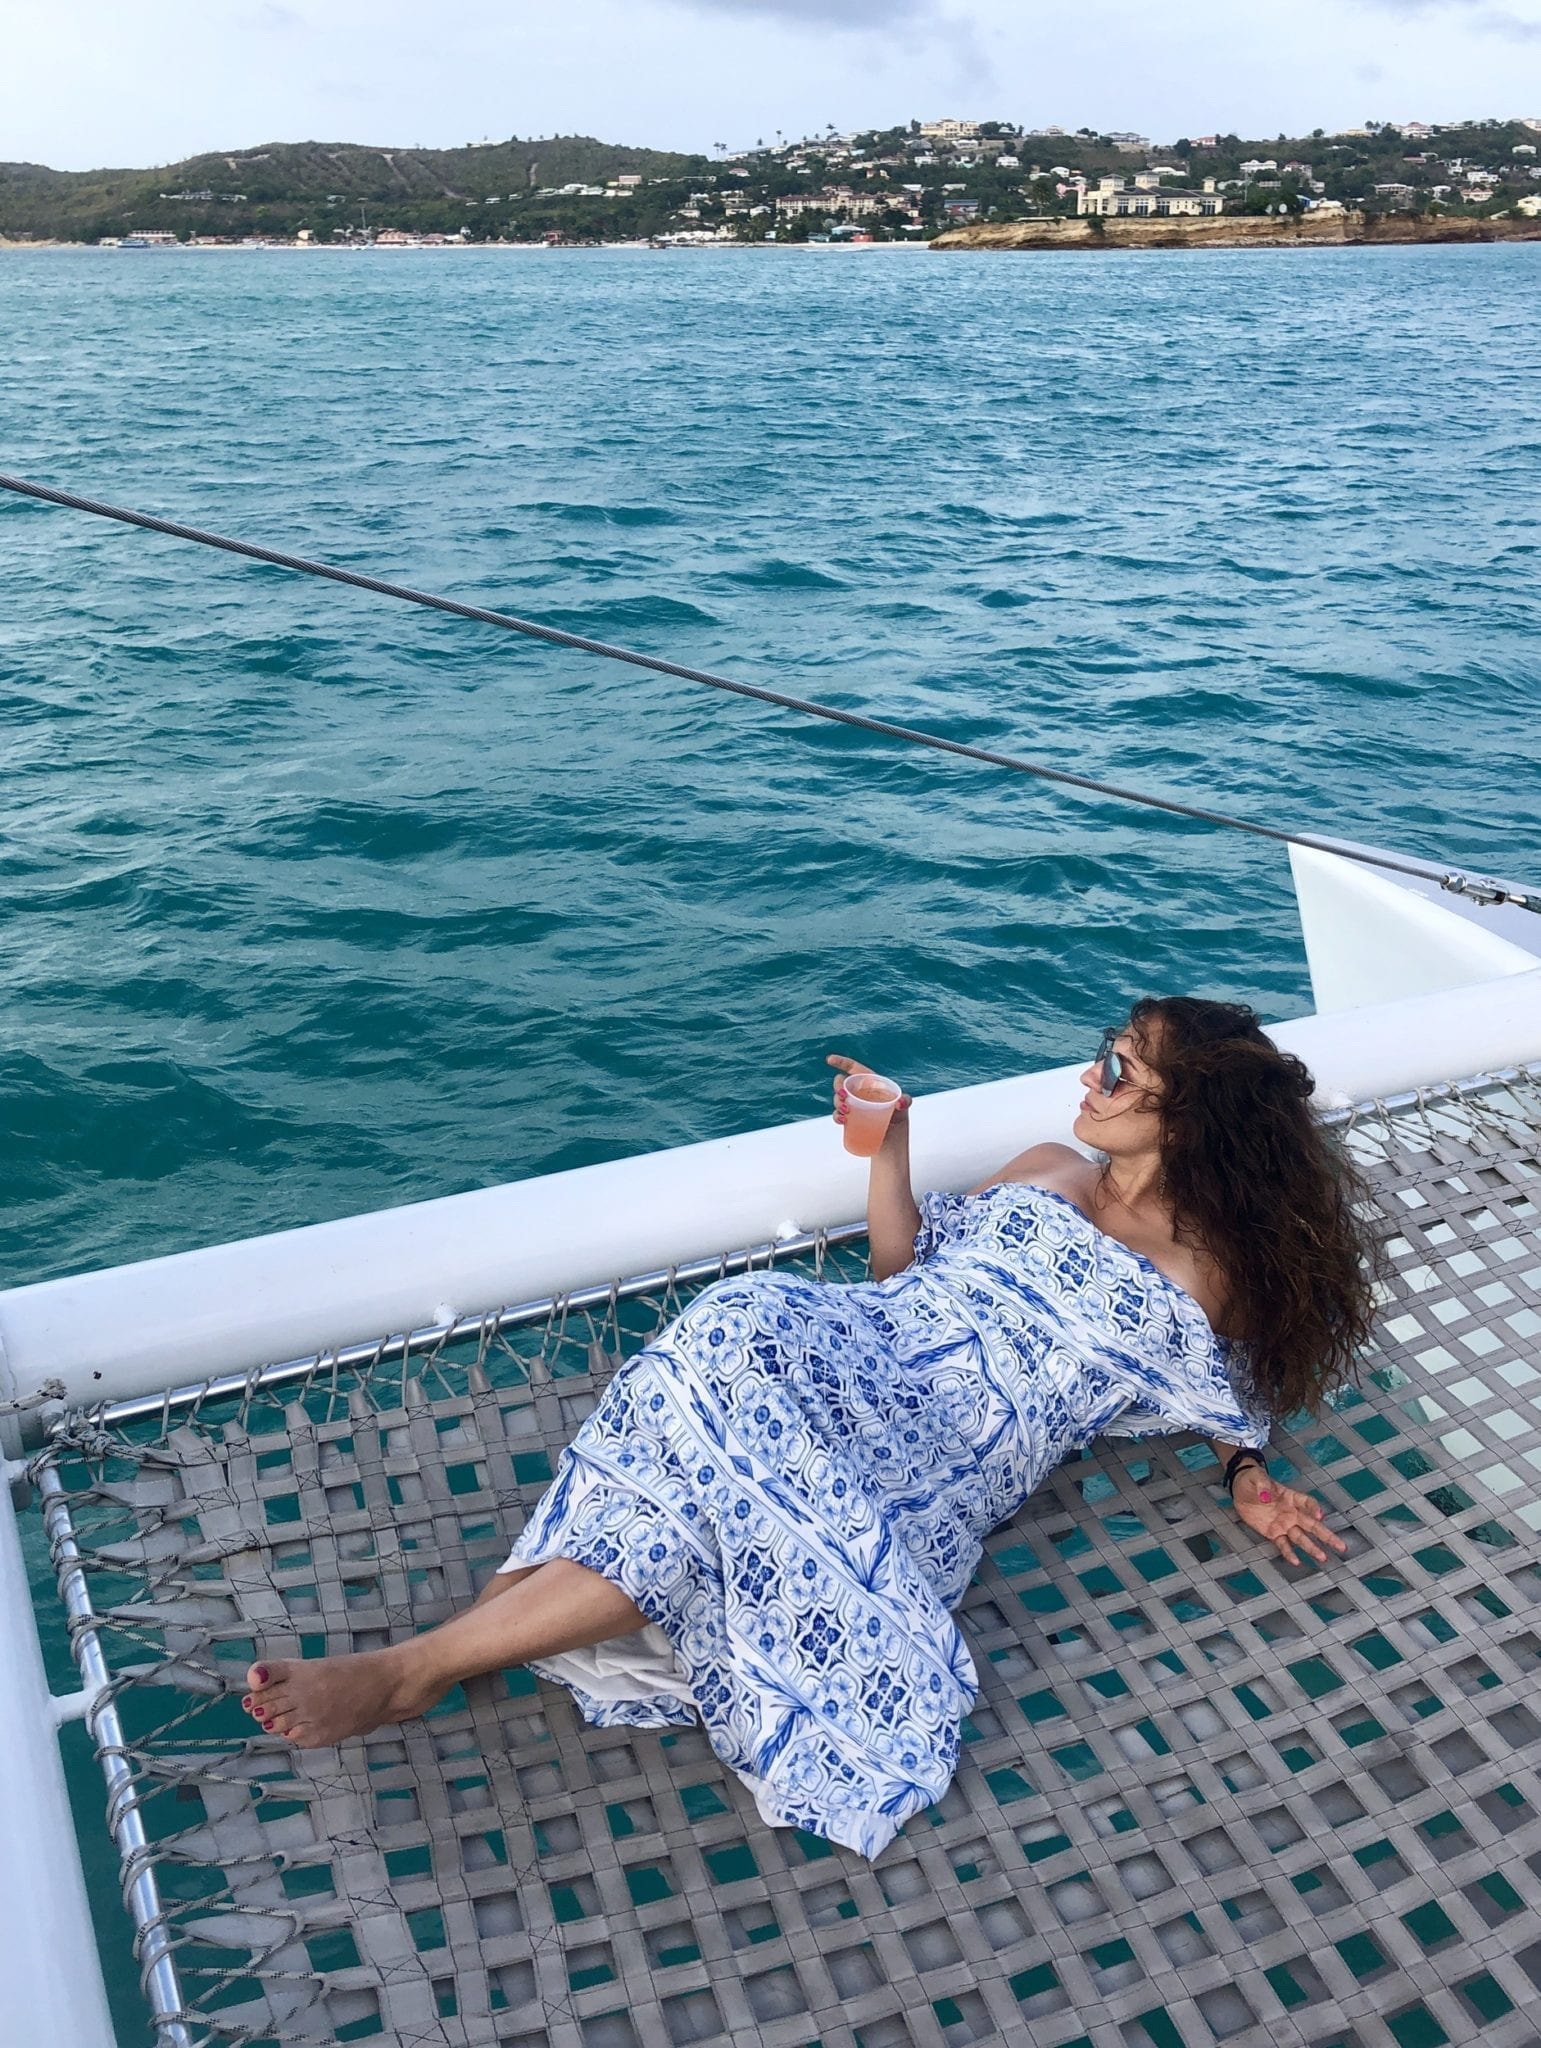 Kate lying down on a net on the end of a catamaran, wearing an off the shoulder white and blue patterned dress, hair long and curly, leaning on her elbows, holding a plastic cup of rum punch in one hand, and staring off into the distance -- turquoise sea and green land in the distance.